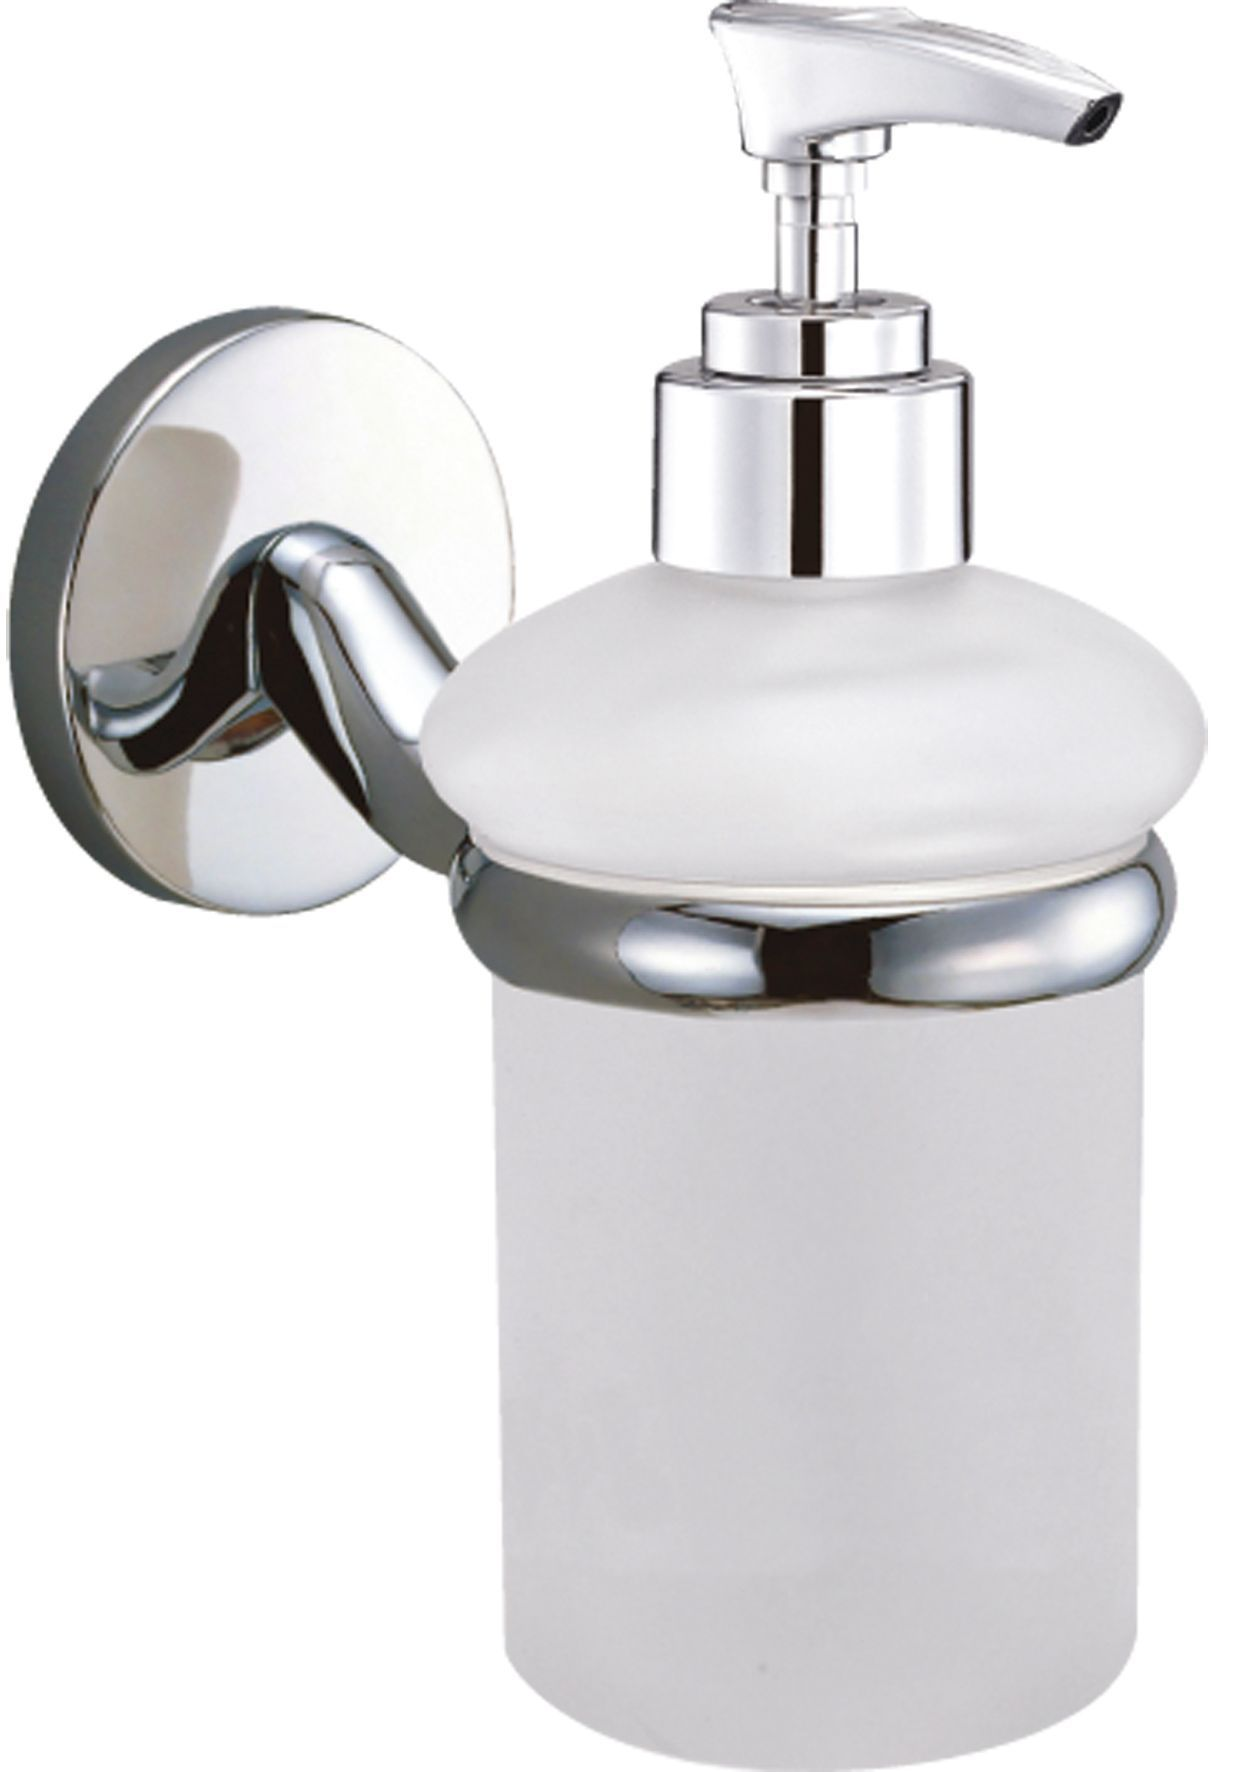 Wall Mounted Soap Dispenser B Andq Curve White Chrome Effect Wall Mounted Soap Dispenser